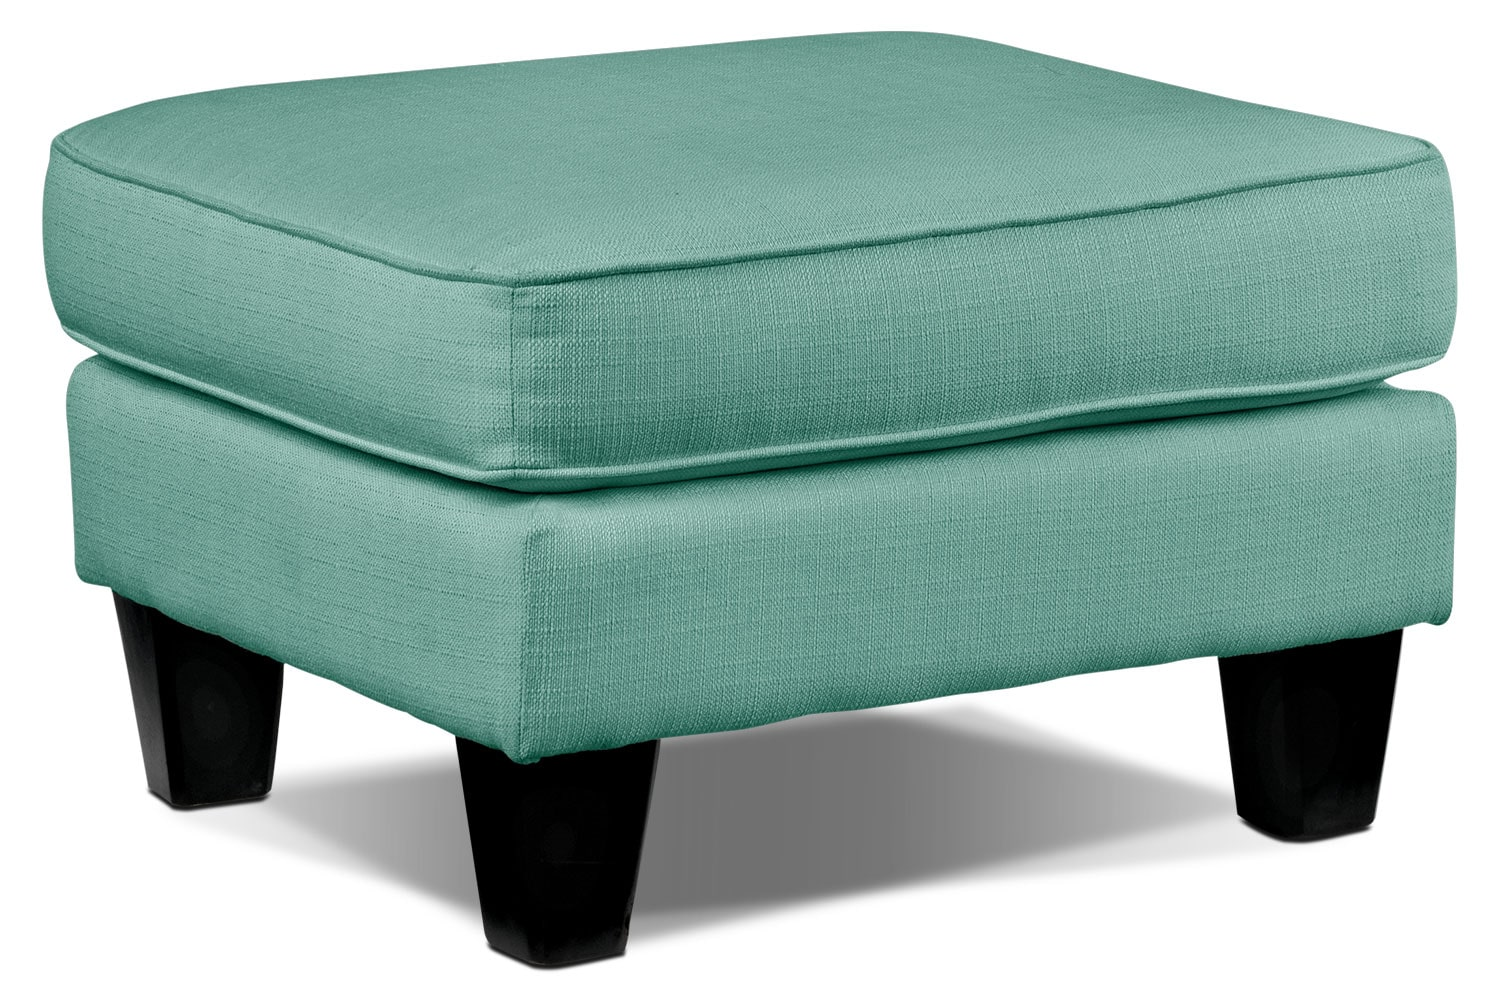 Living Room Furniture - Klein Ottoman - Laguna